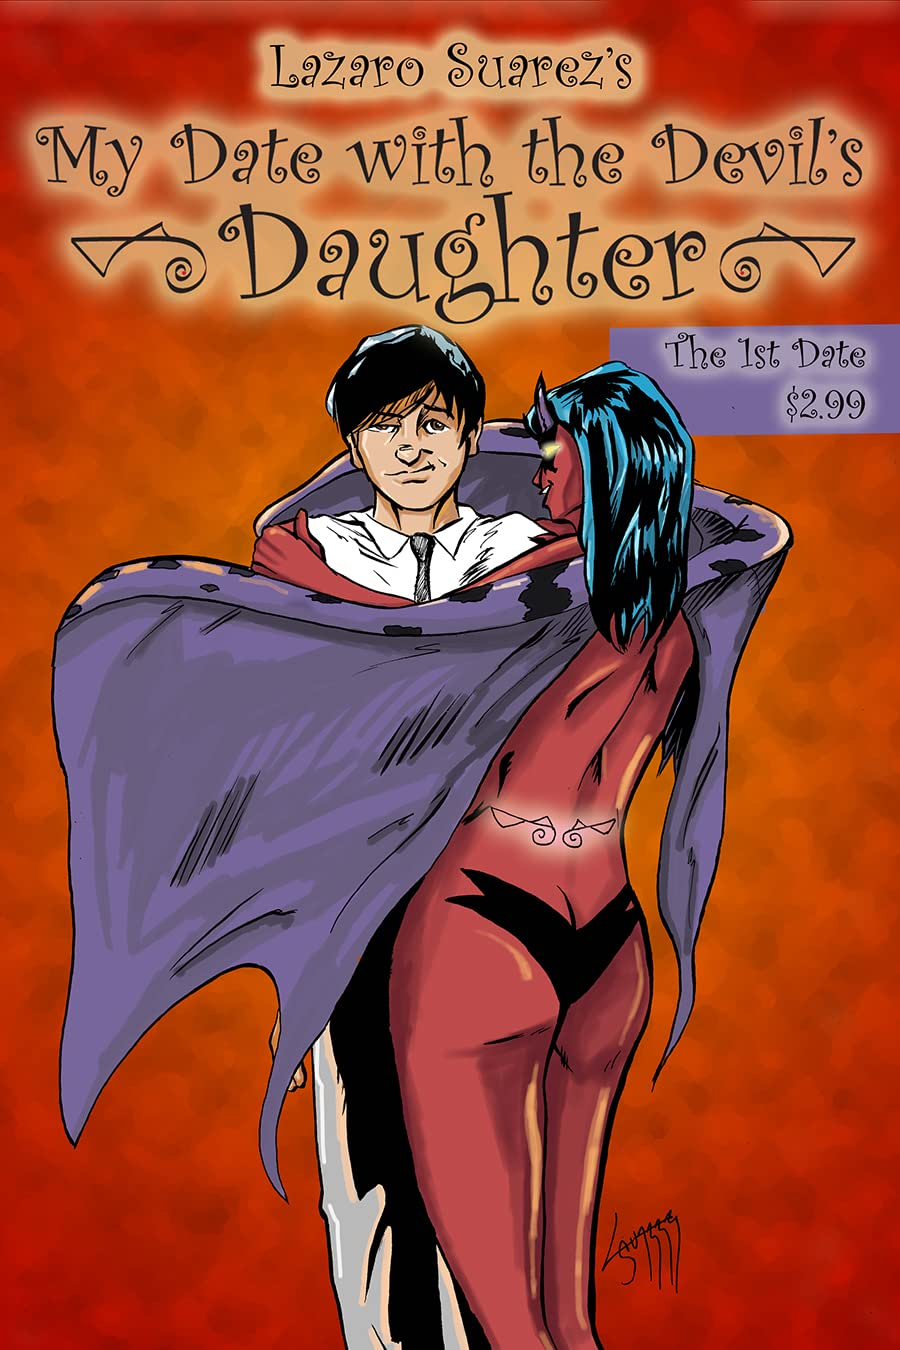 My Date with the Devil's Daughter #1